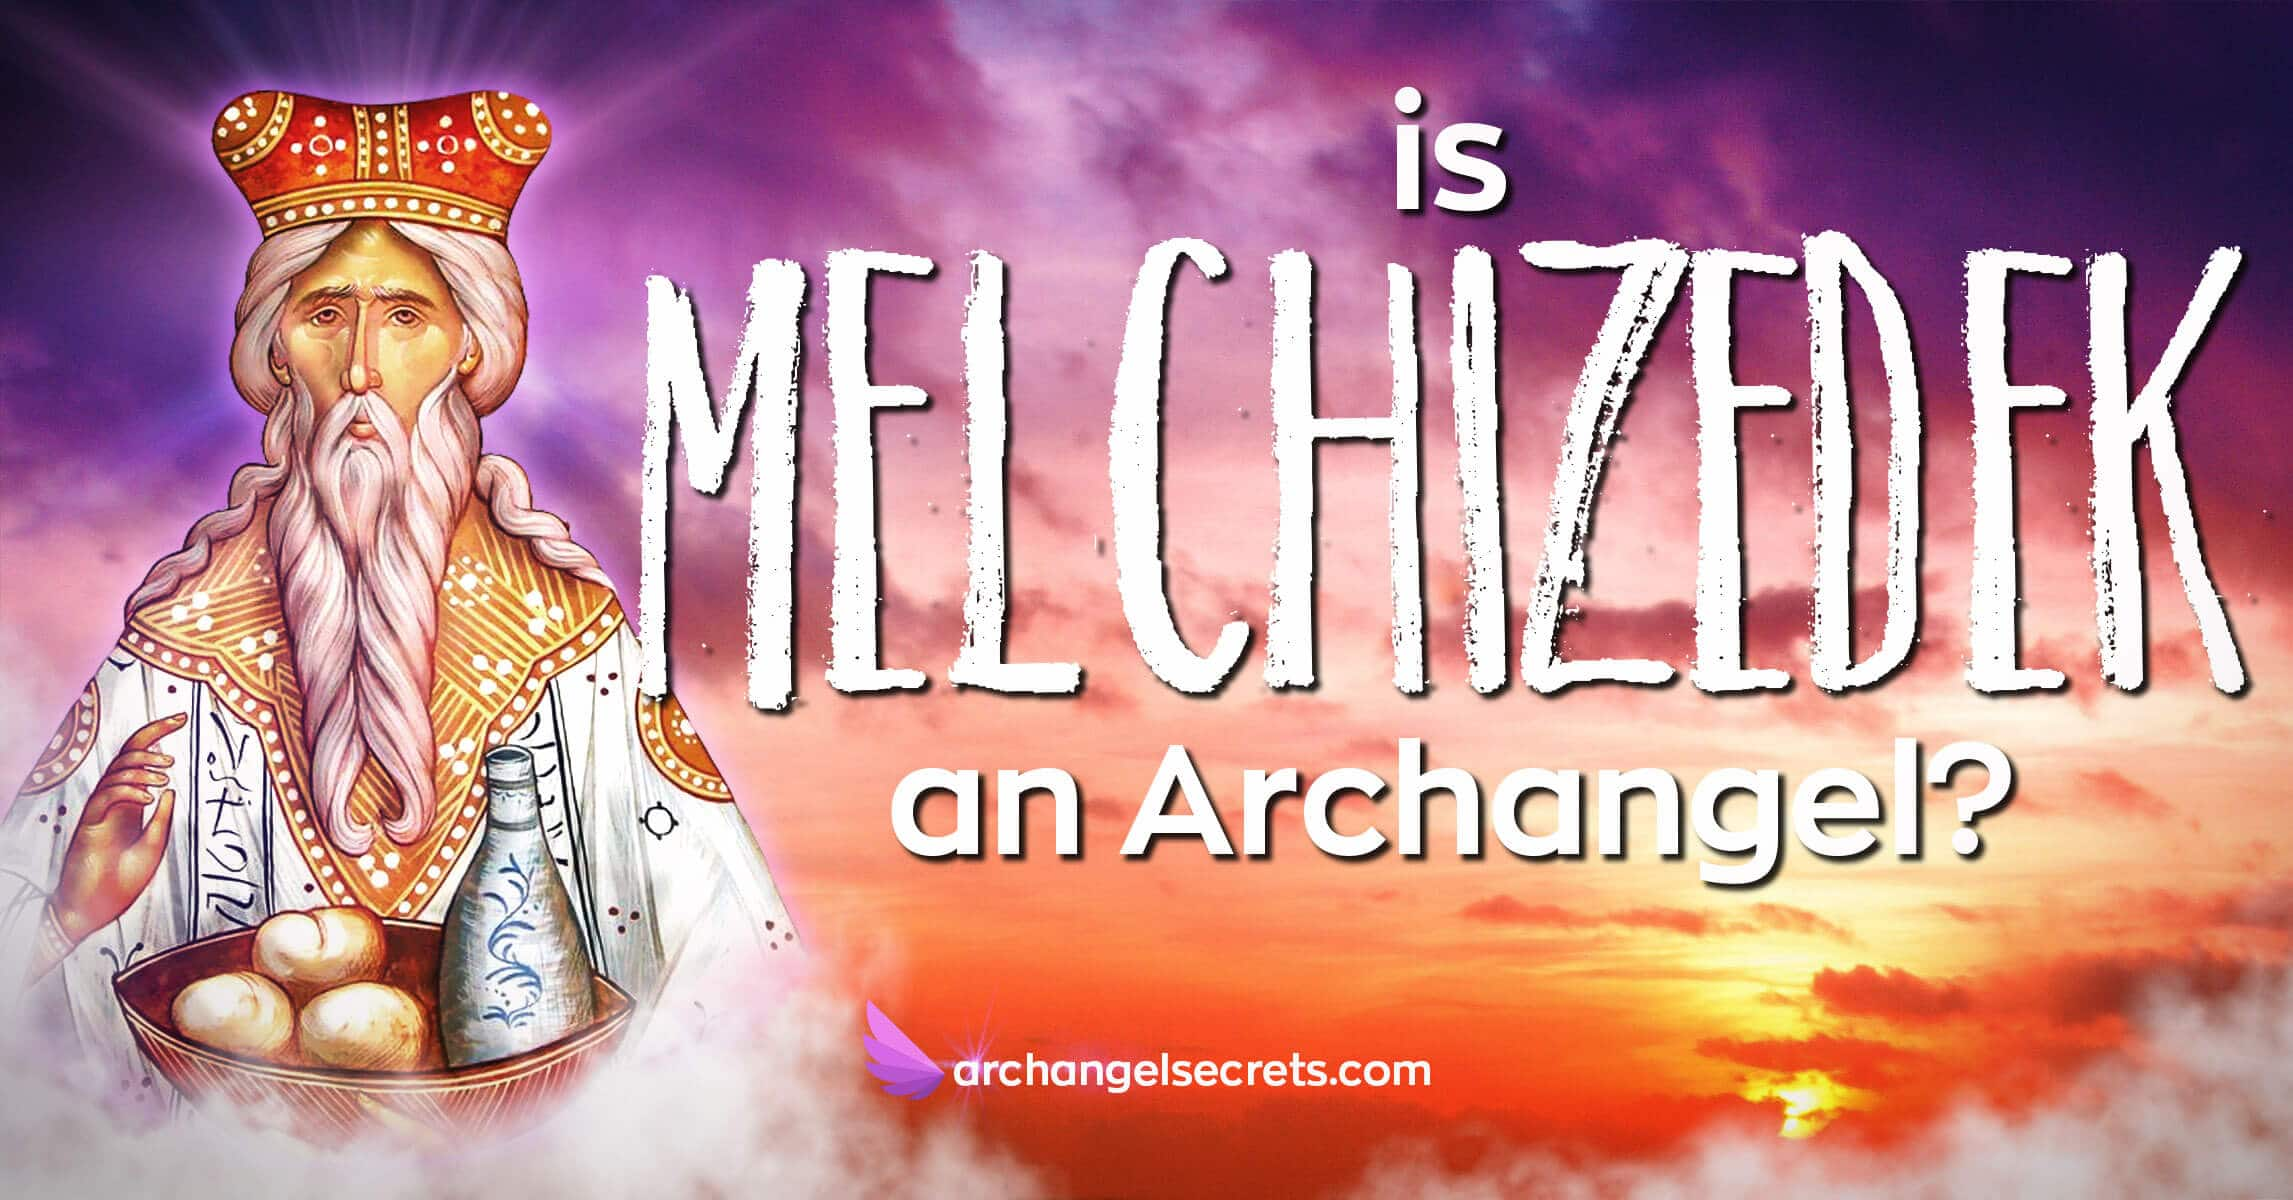 is-Melchizedek-an-archangel-portrait